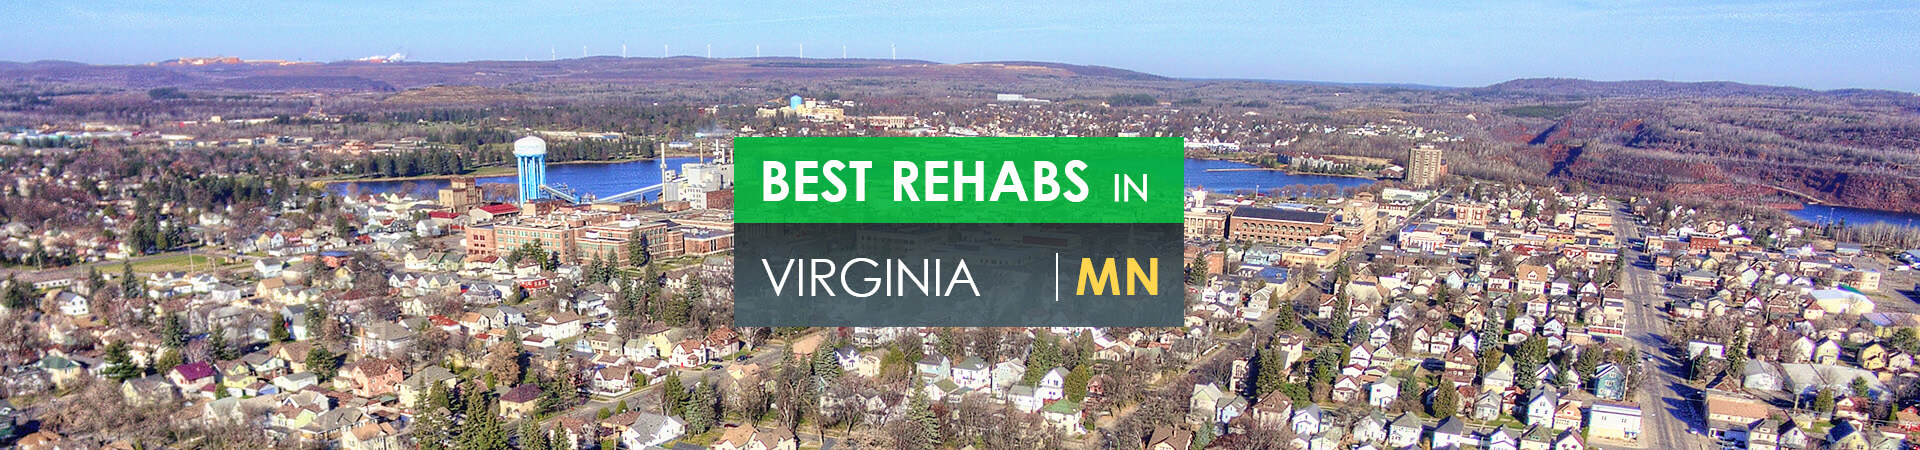 Best rehabs in Virginia, MN